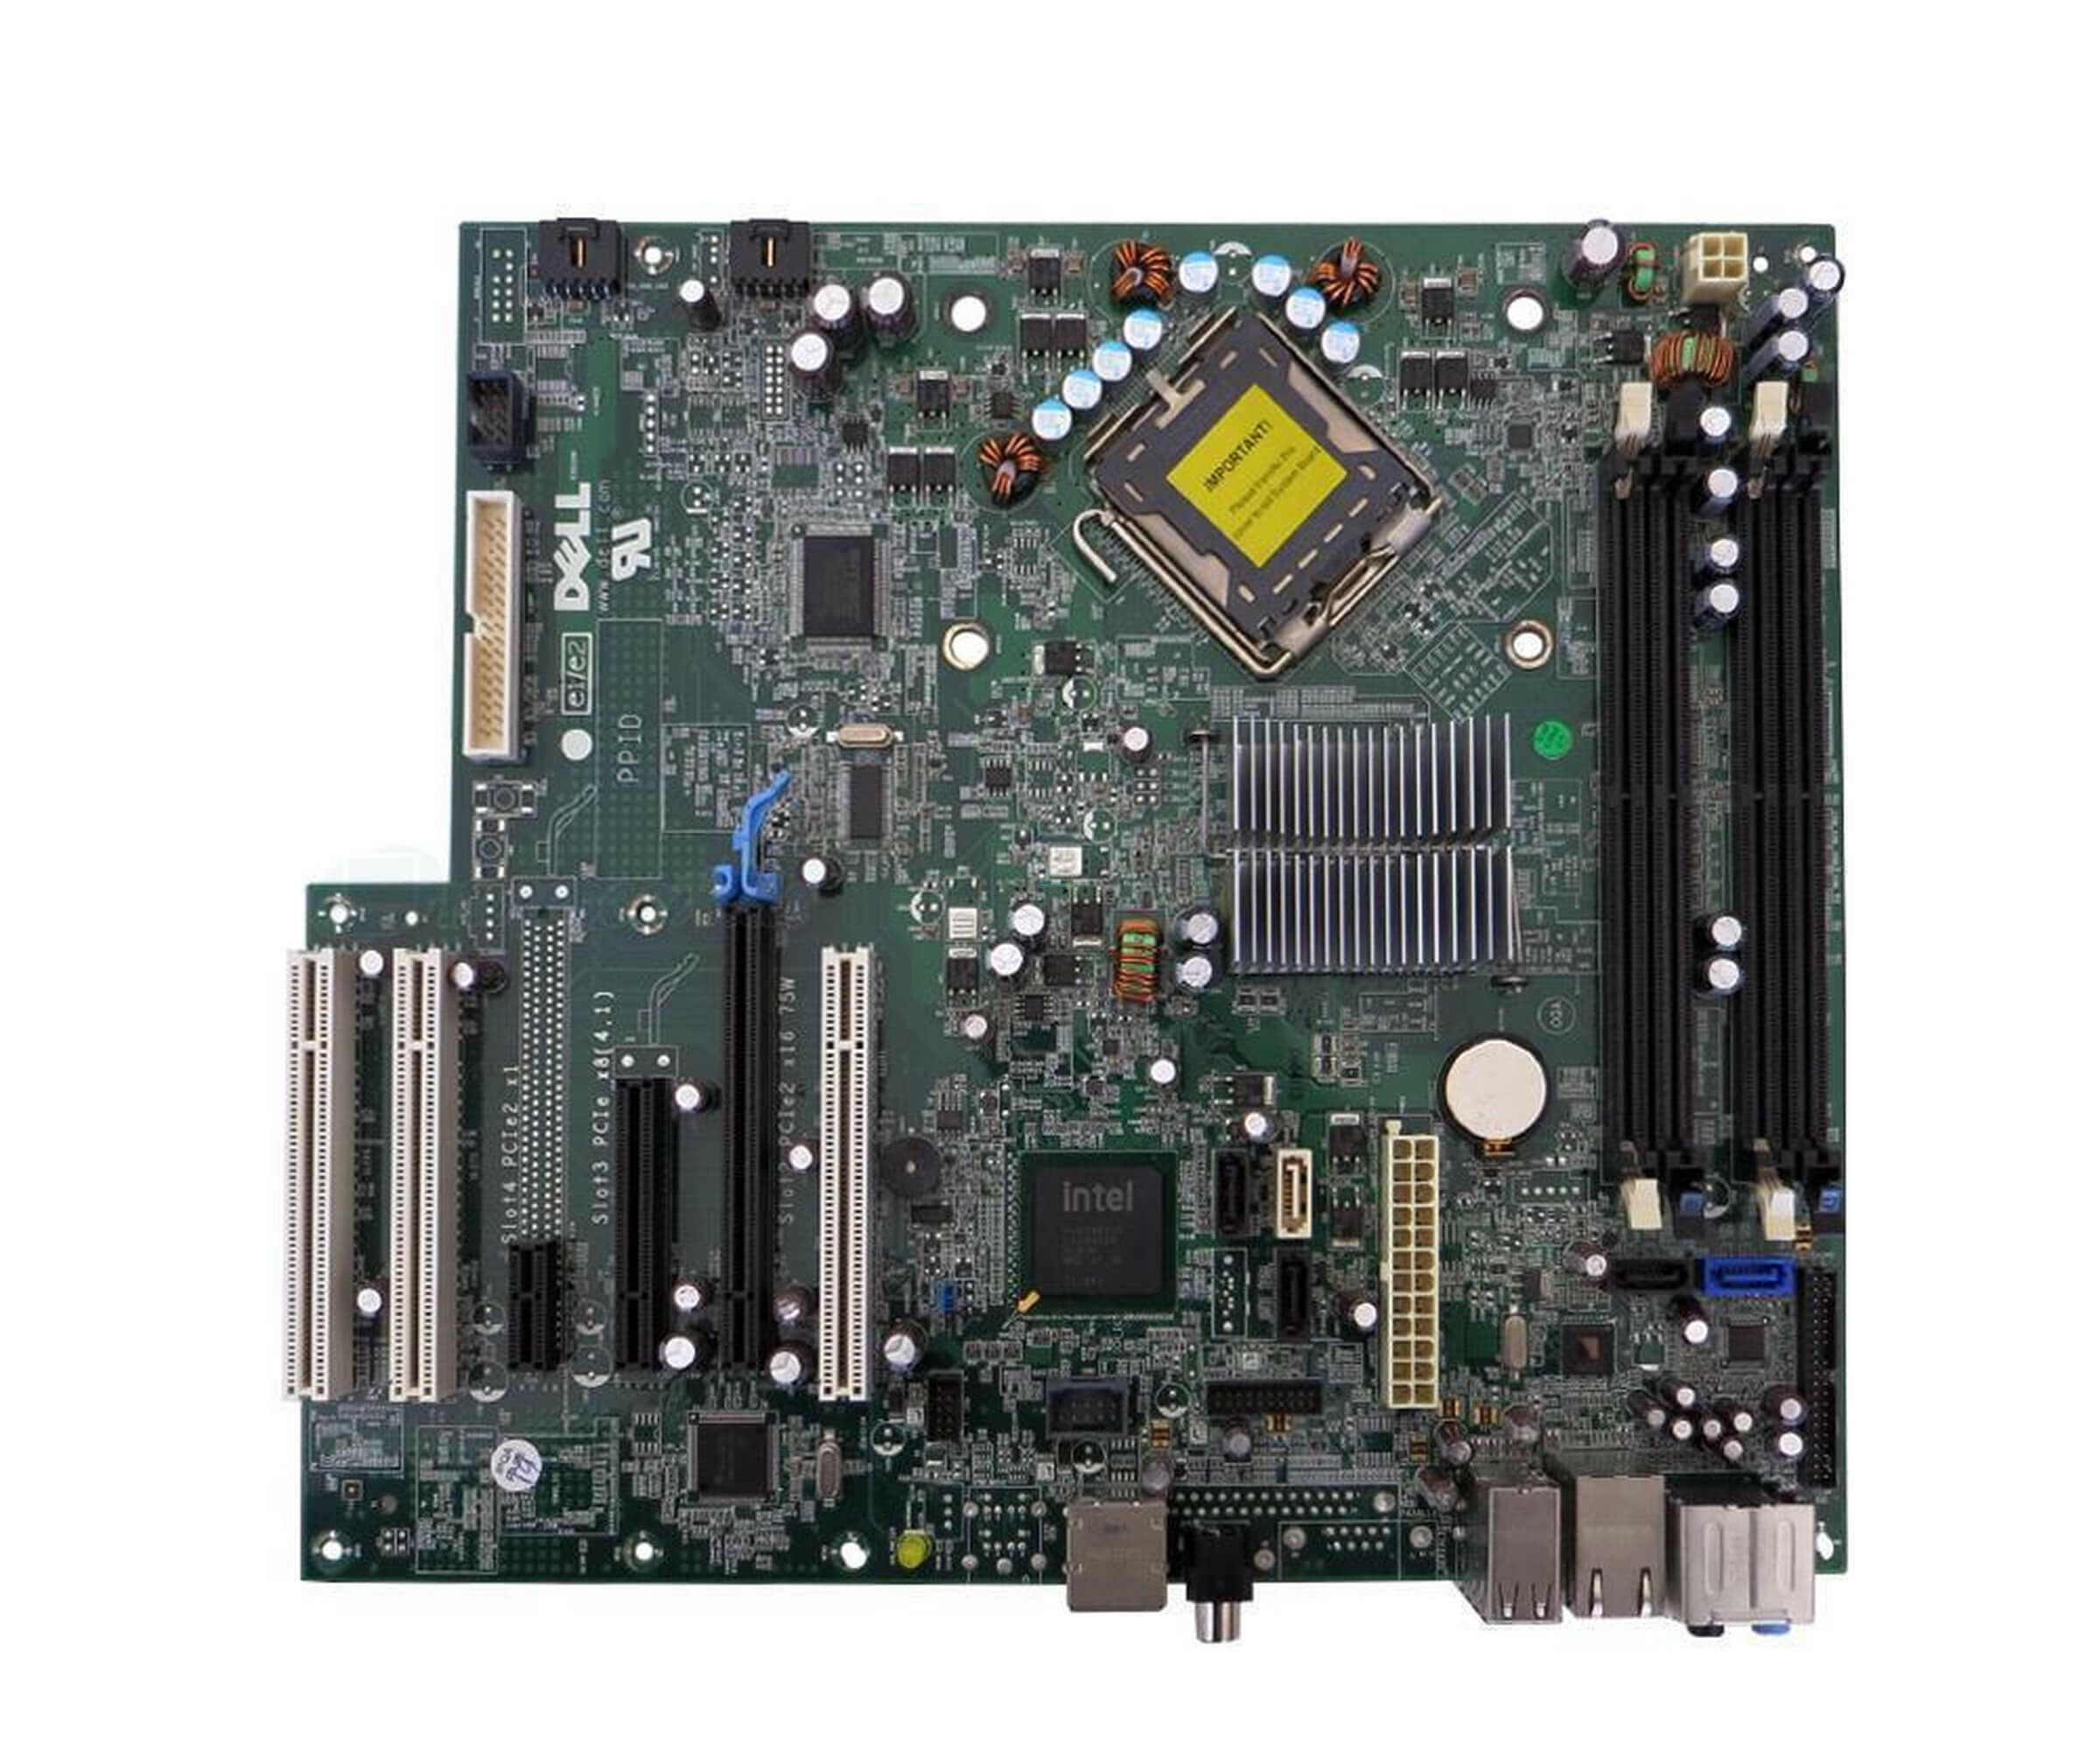 Dell TP406 Motherboard - Mainboard für Dell XPS 420